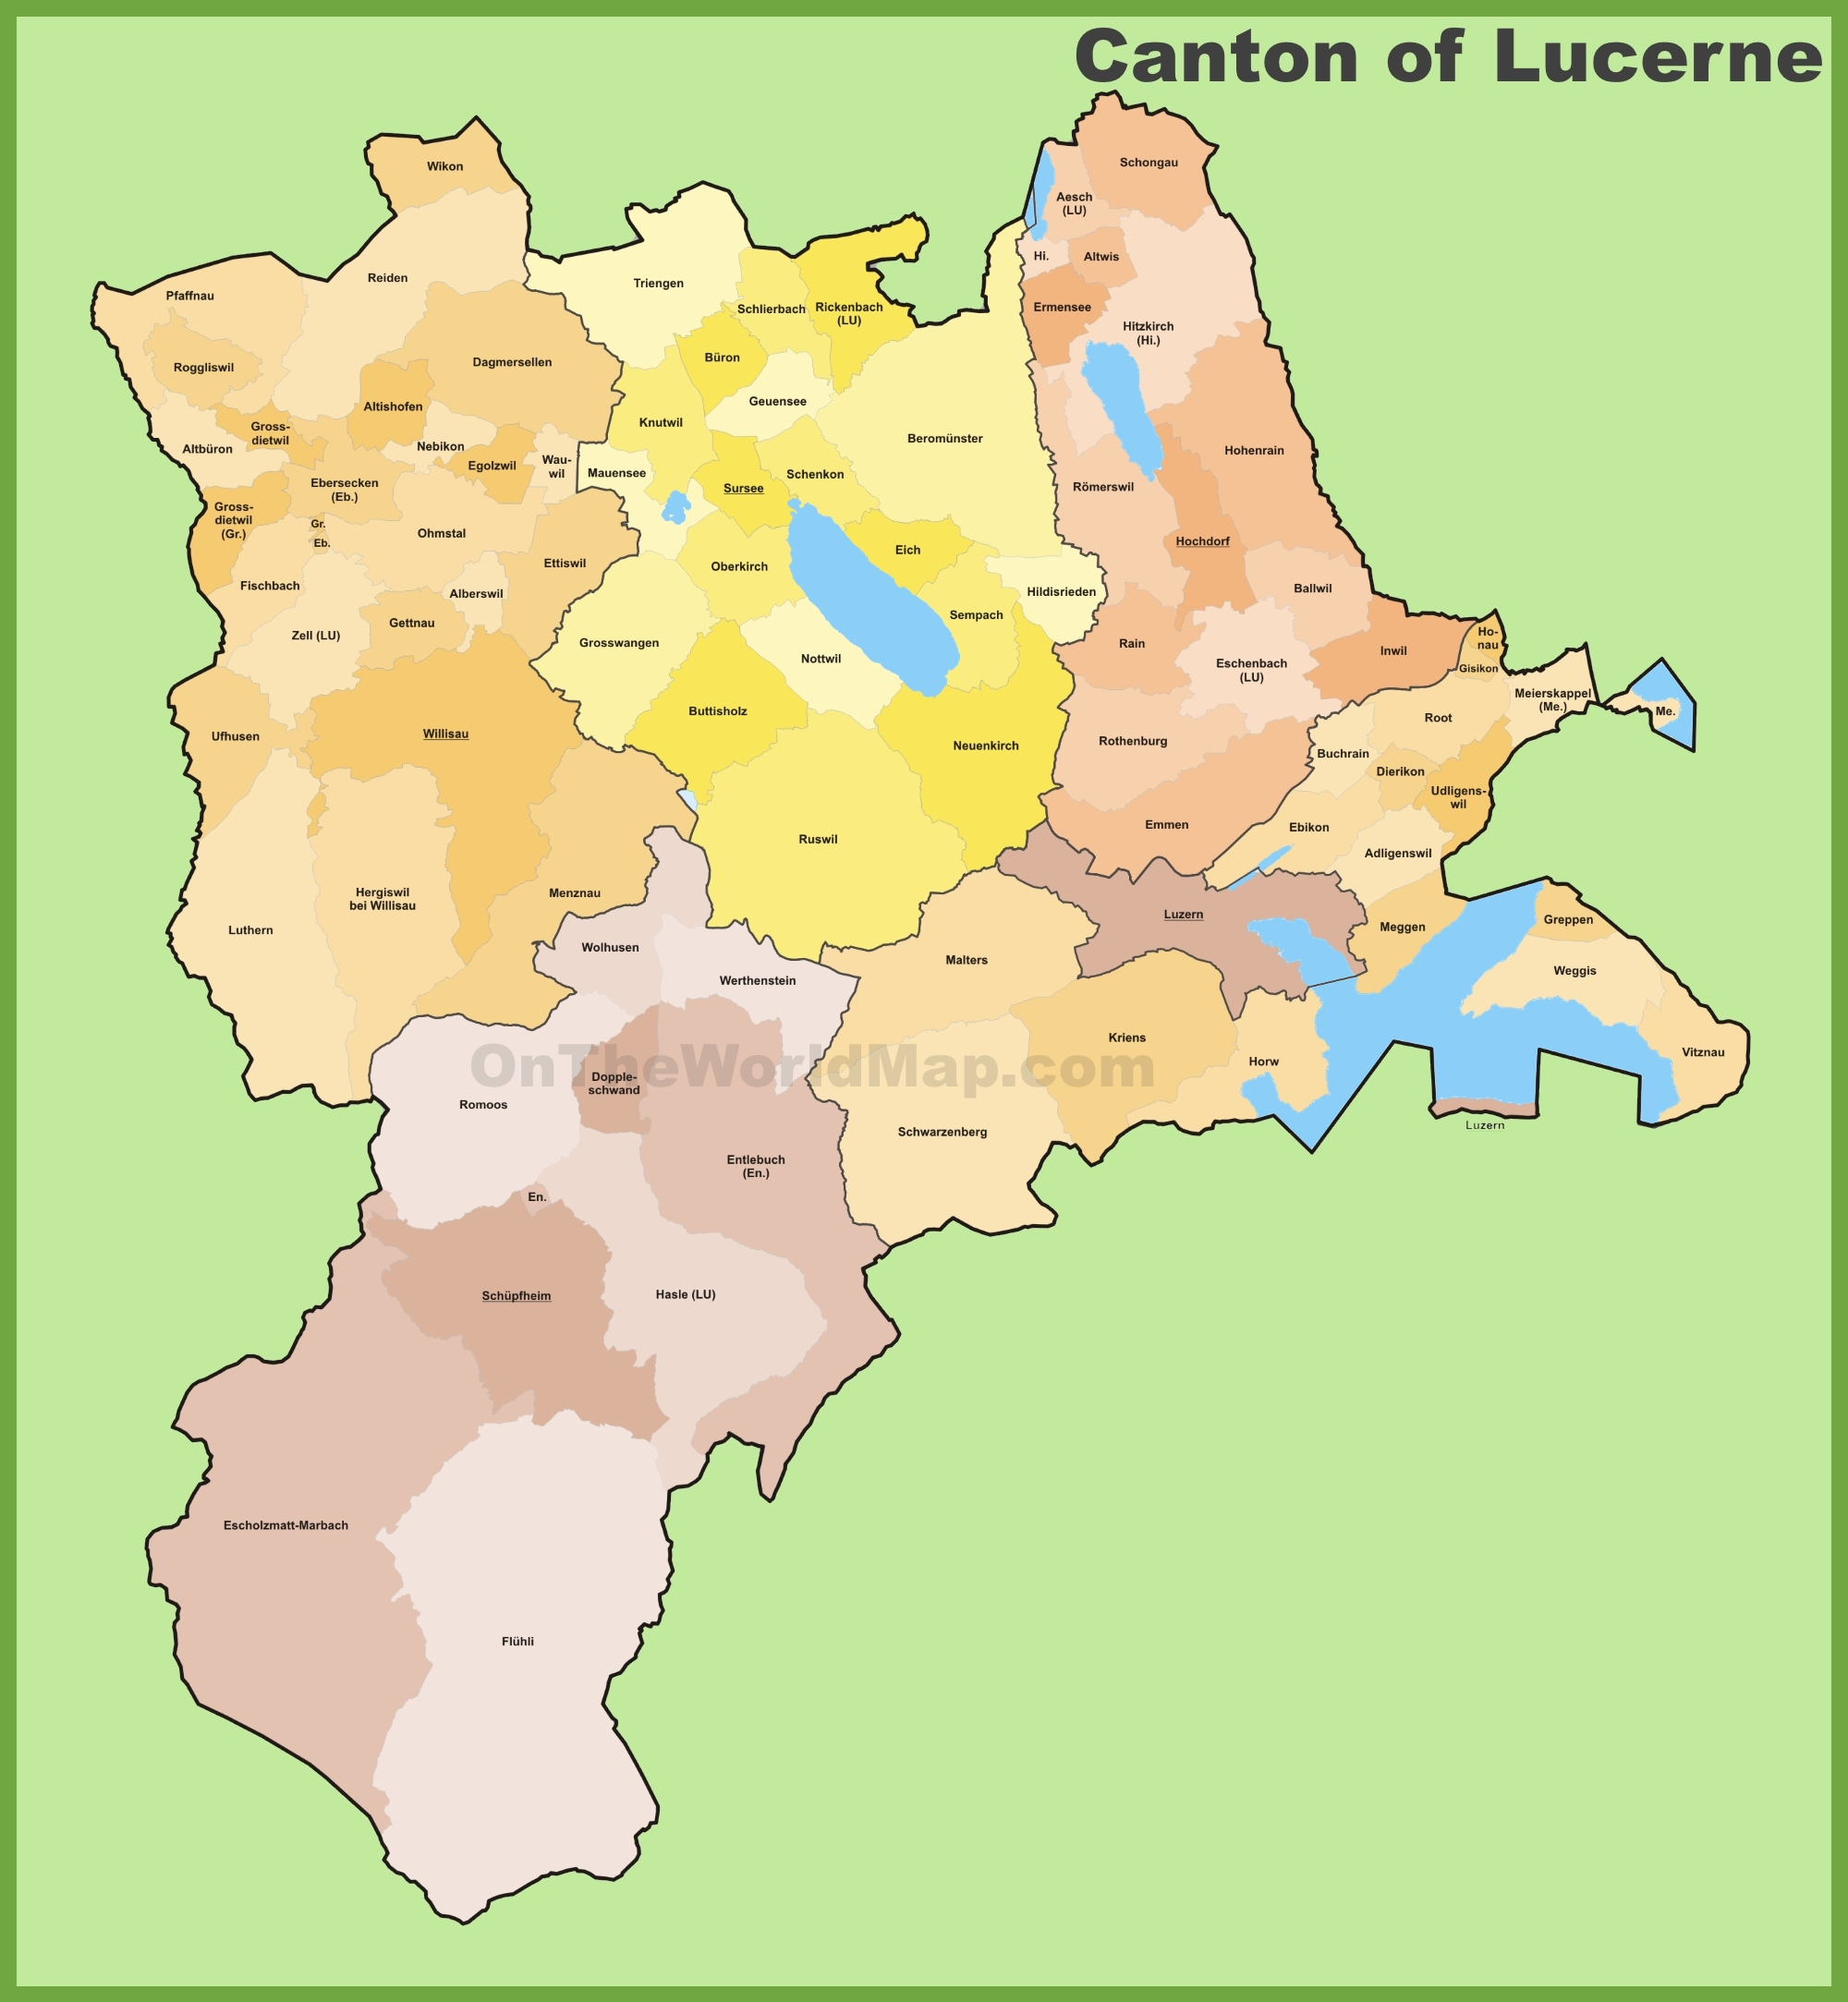 Canton of Lucerne municipality map